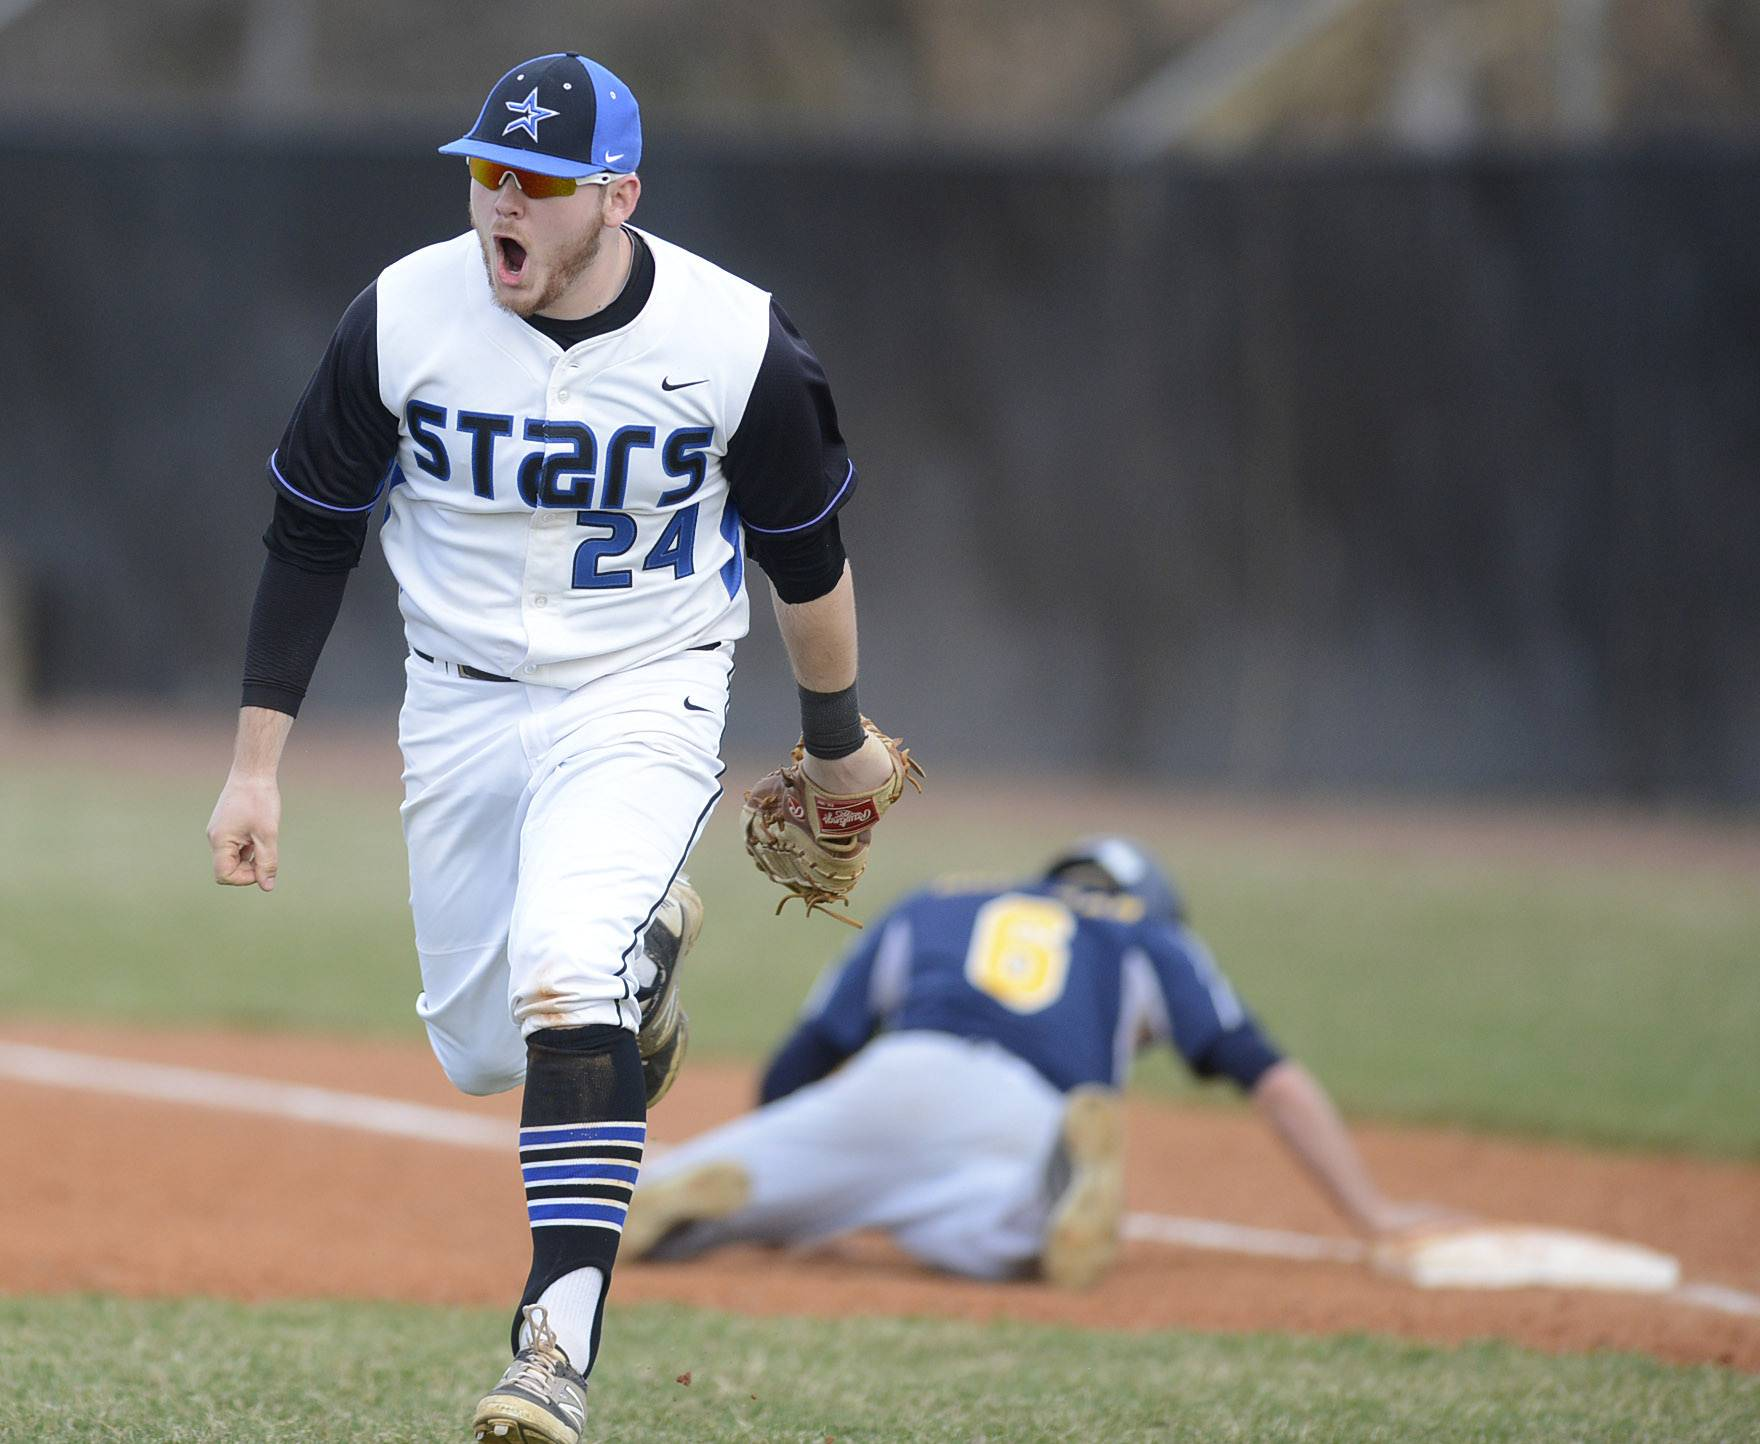 St. Charles North's Jack Dennis heads back to the dugout after tagging out Neuqua Valley's Zach Herdman at first base on Friday.